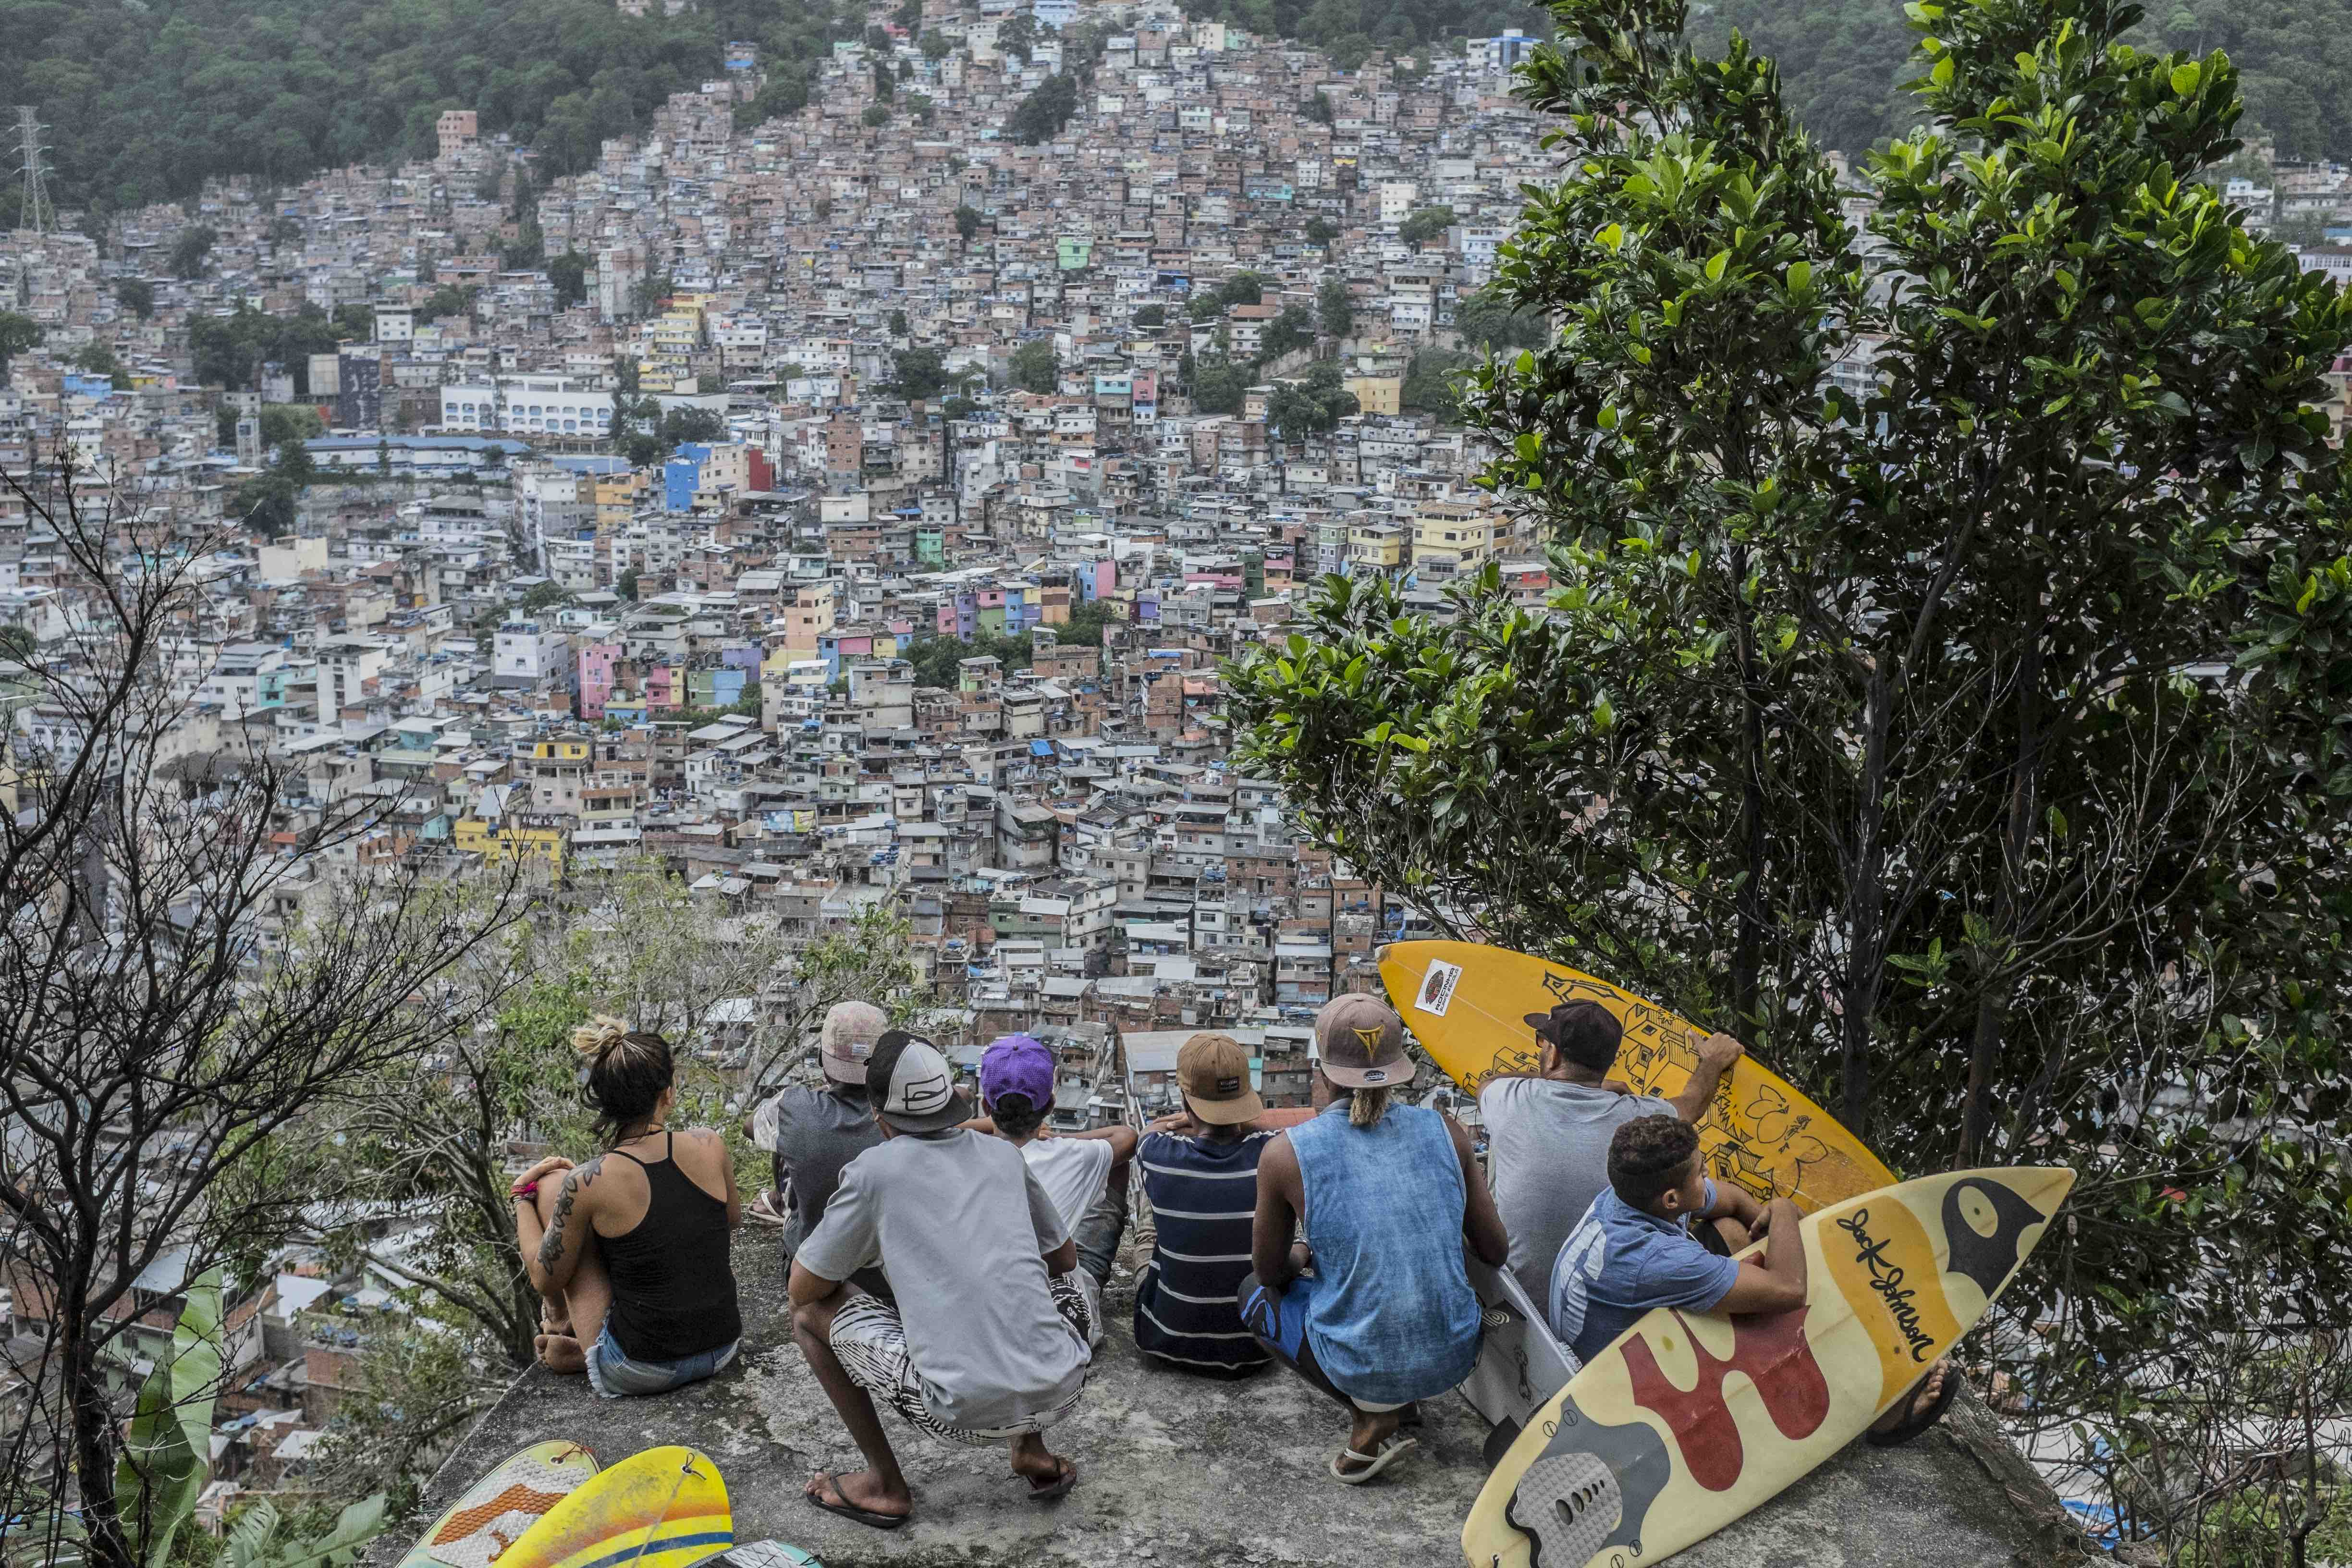 Looking out over Rocinha.